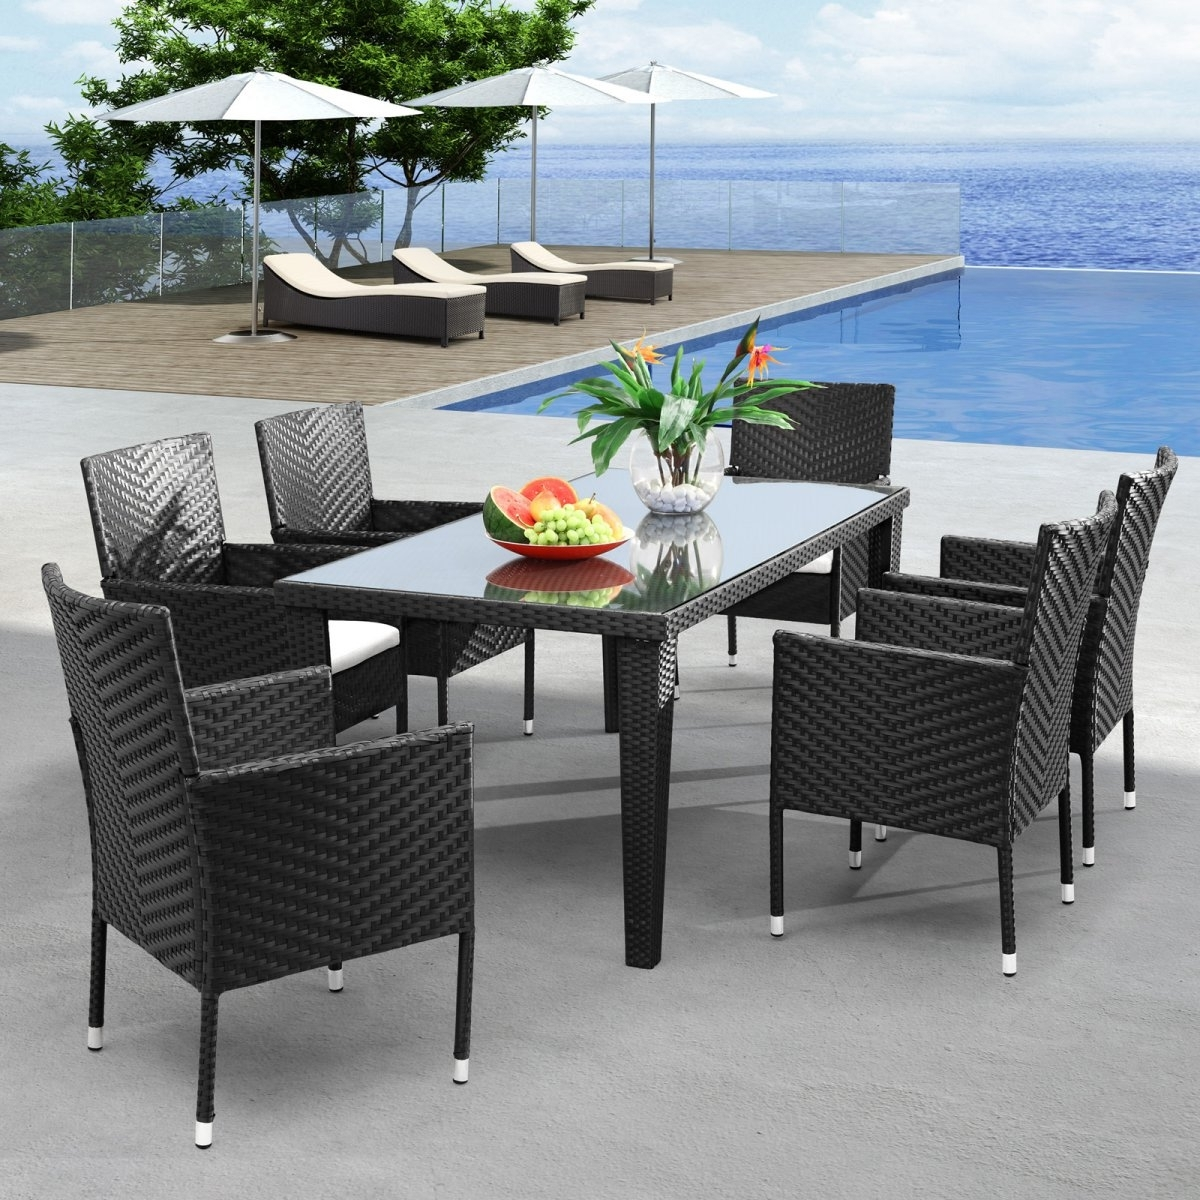 2017 Wicker And Glass Dining Tables Intended For Gray Plastic Wicker Outdoor Dining Room Set With Glass Dining Table (View 1 of 25)